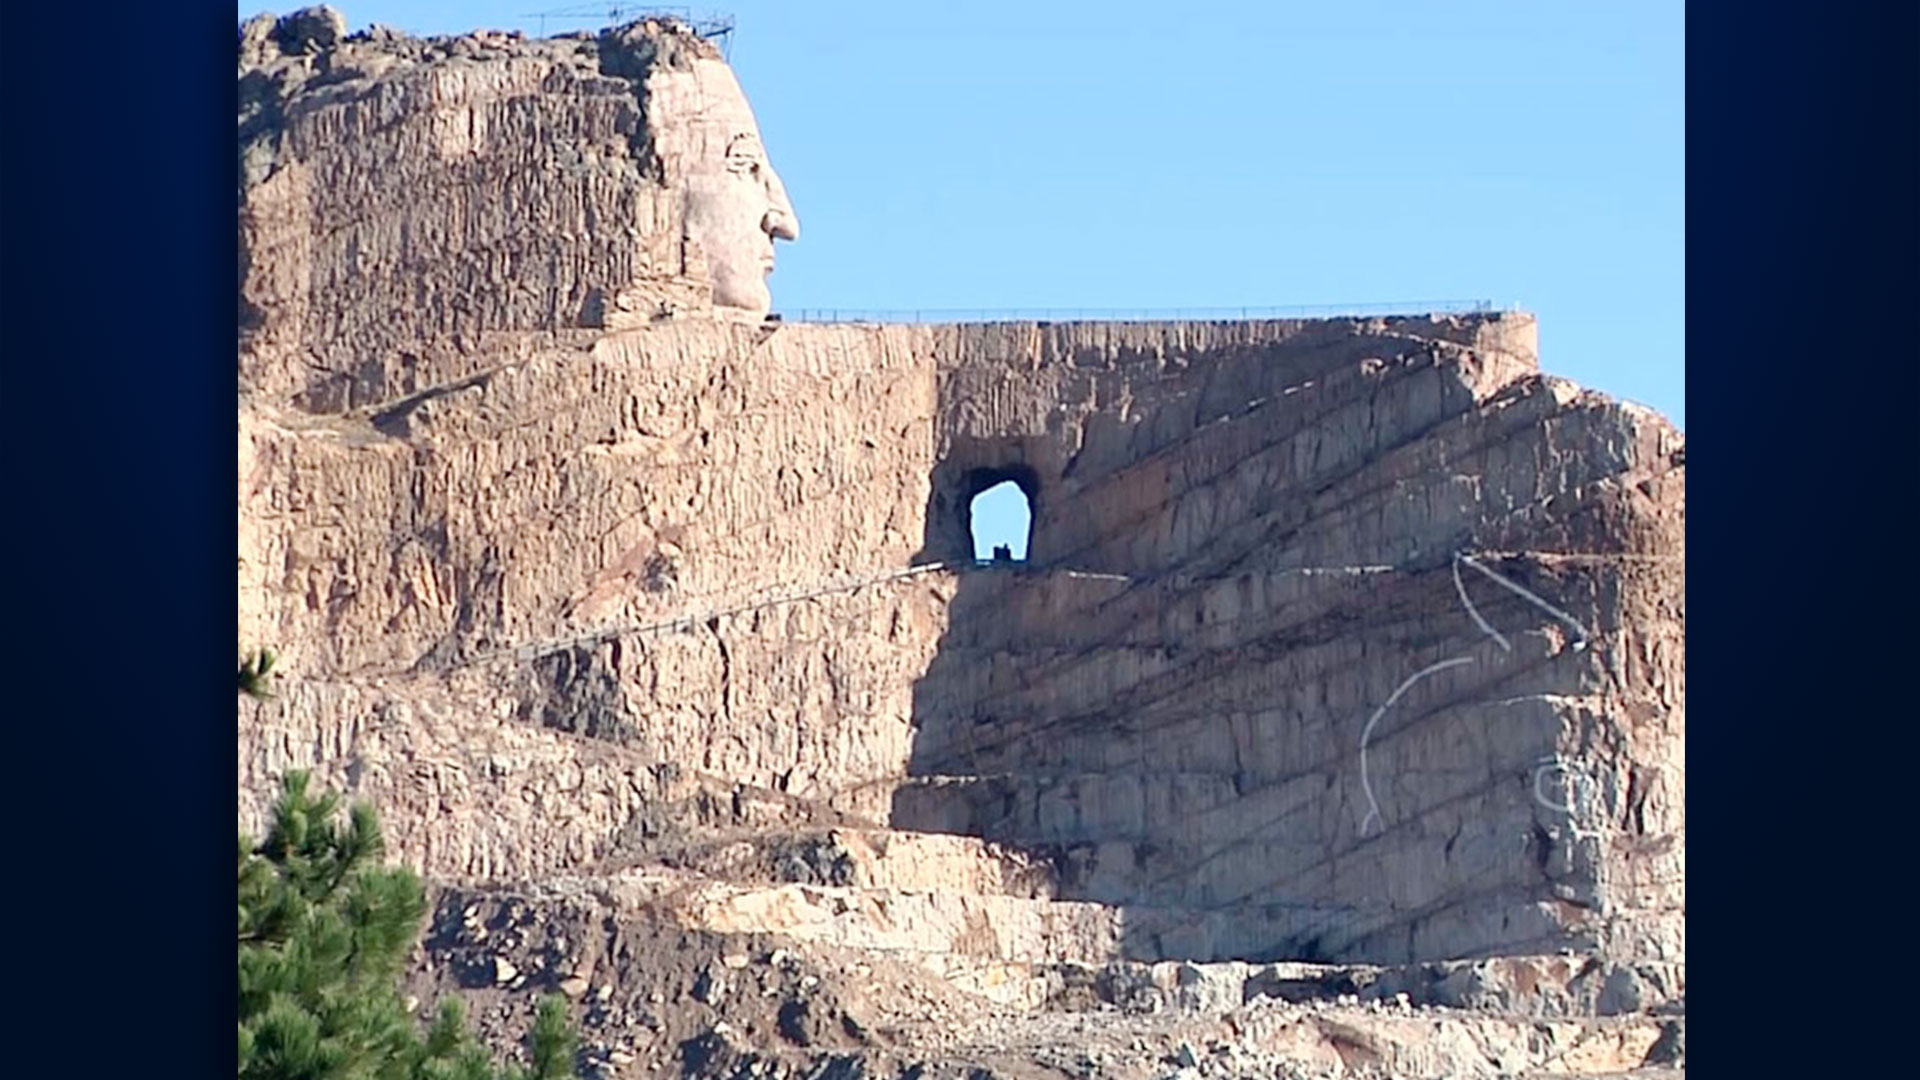 Ceremonial Blast Planned Thursday At Crazy Horse Memorial